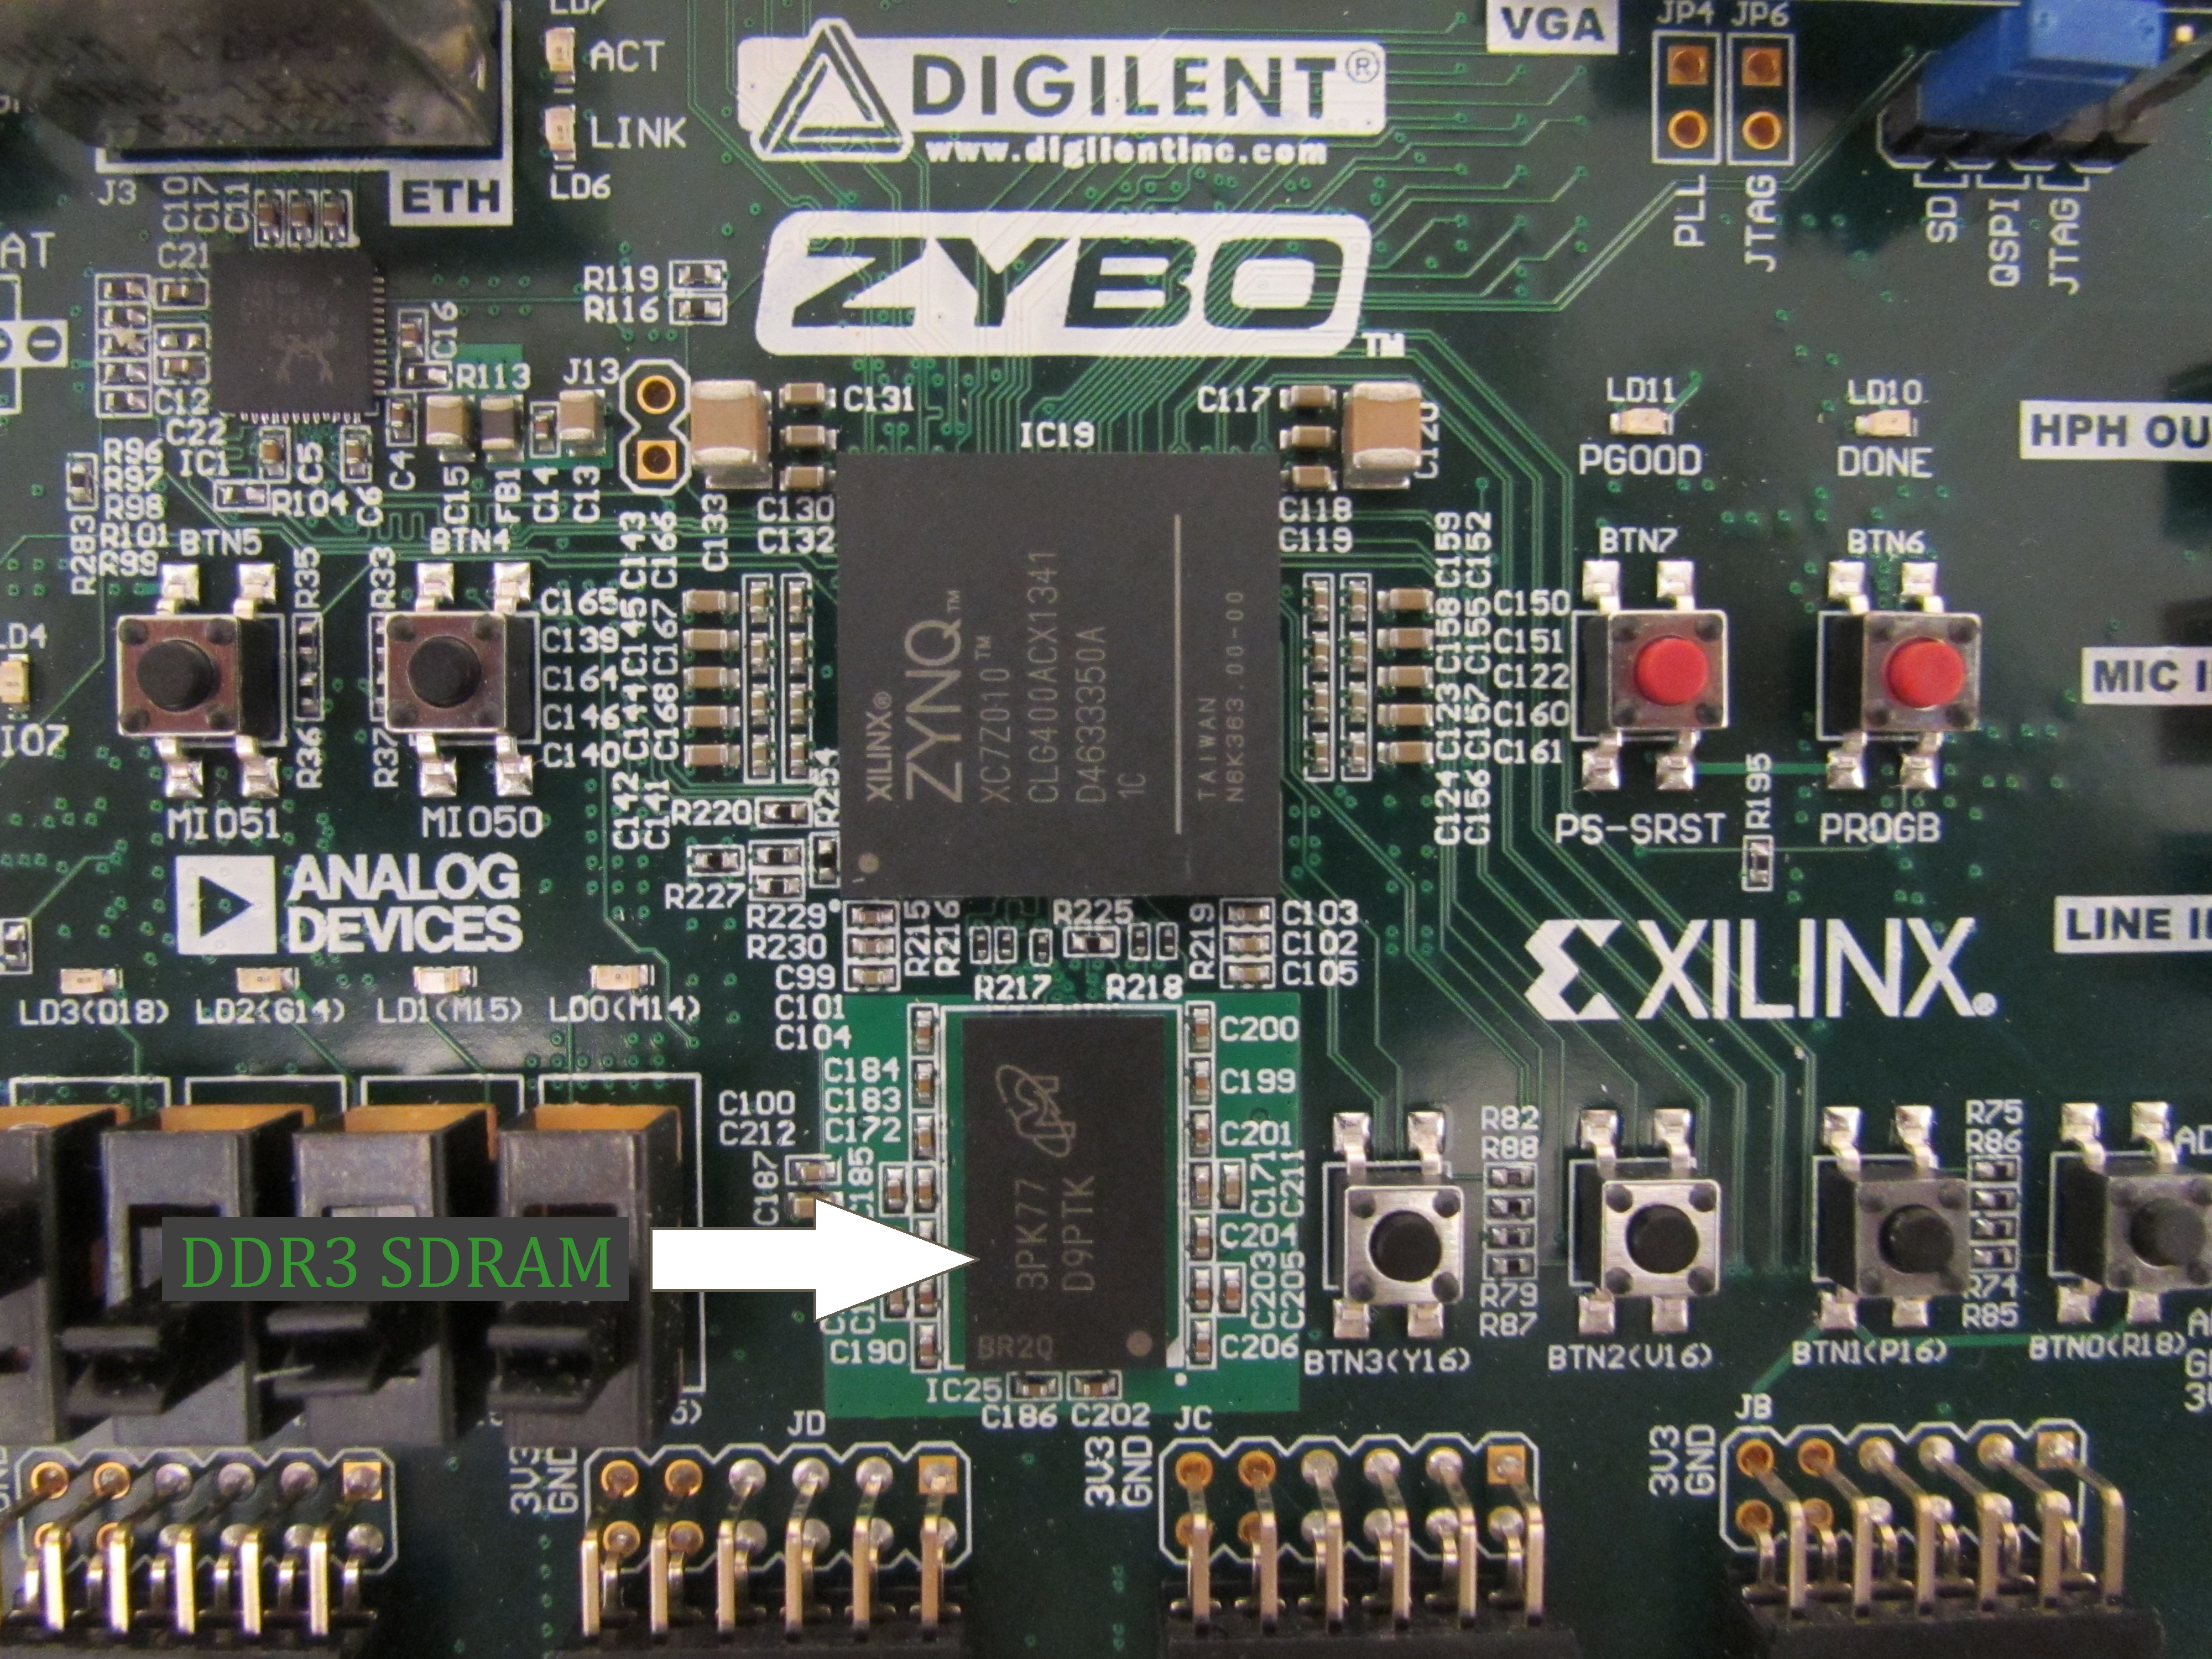 The DDR3 SDRAM chip on the ZYBO